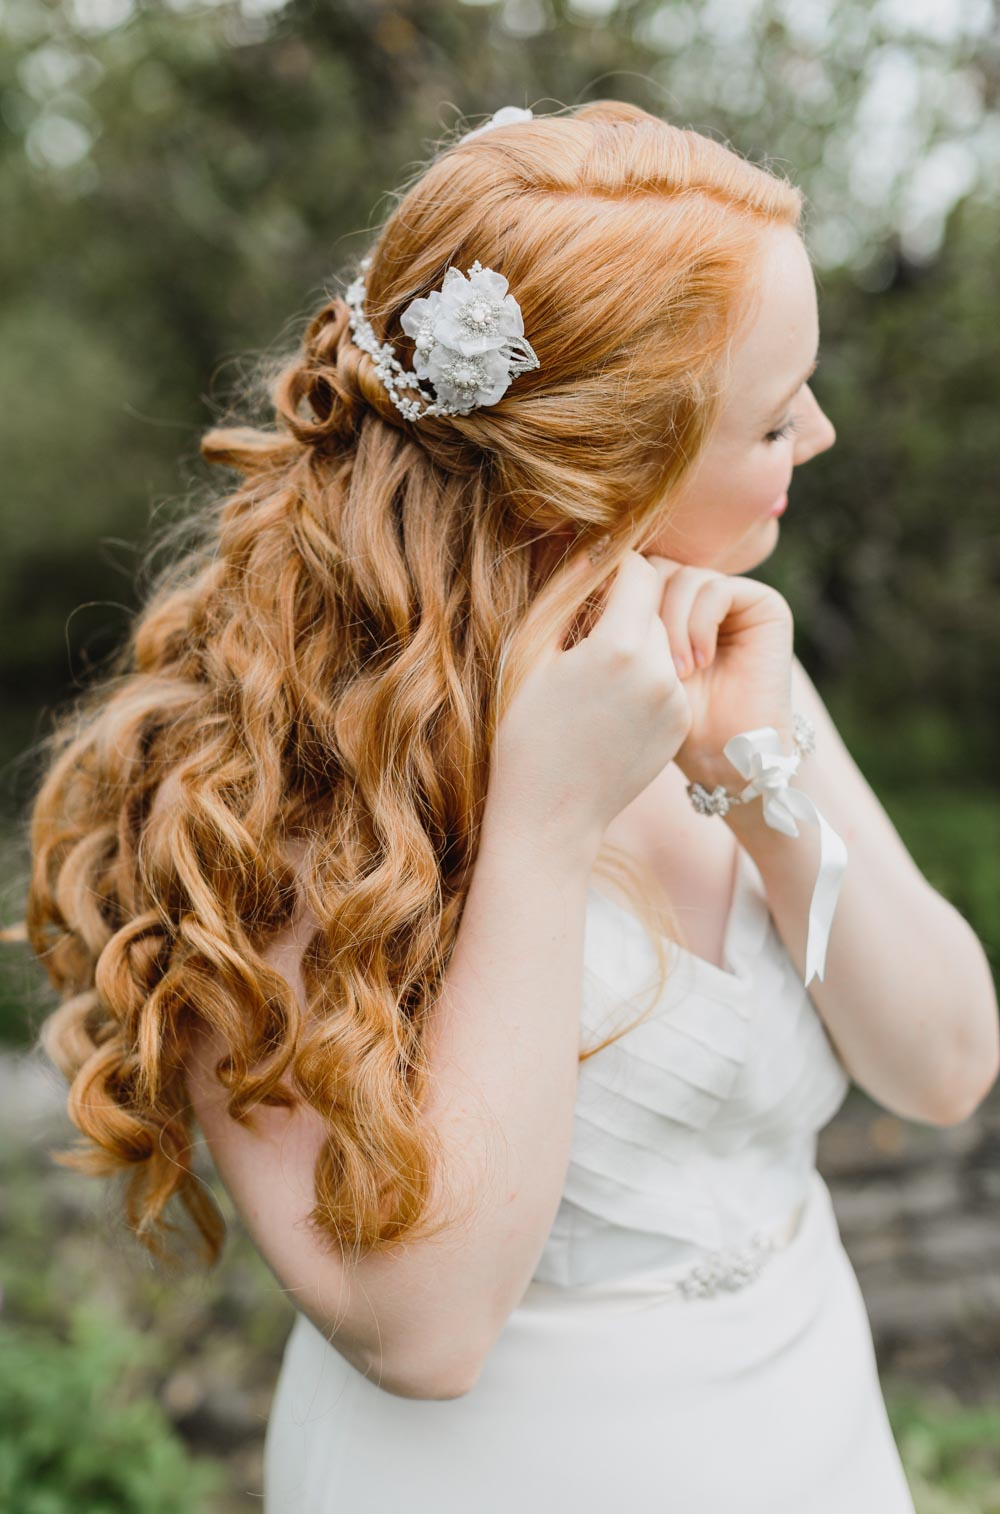 Myrtle Hair Chain, Gardenia Bracelet, & Orange Blossom Belt